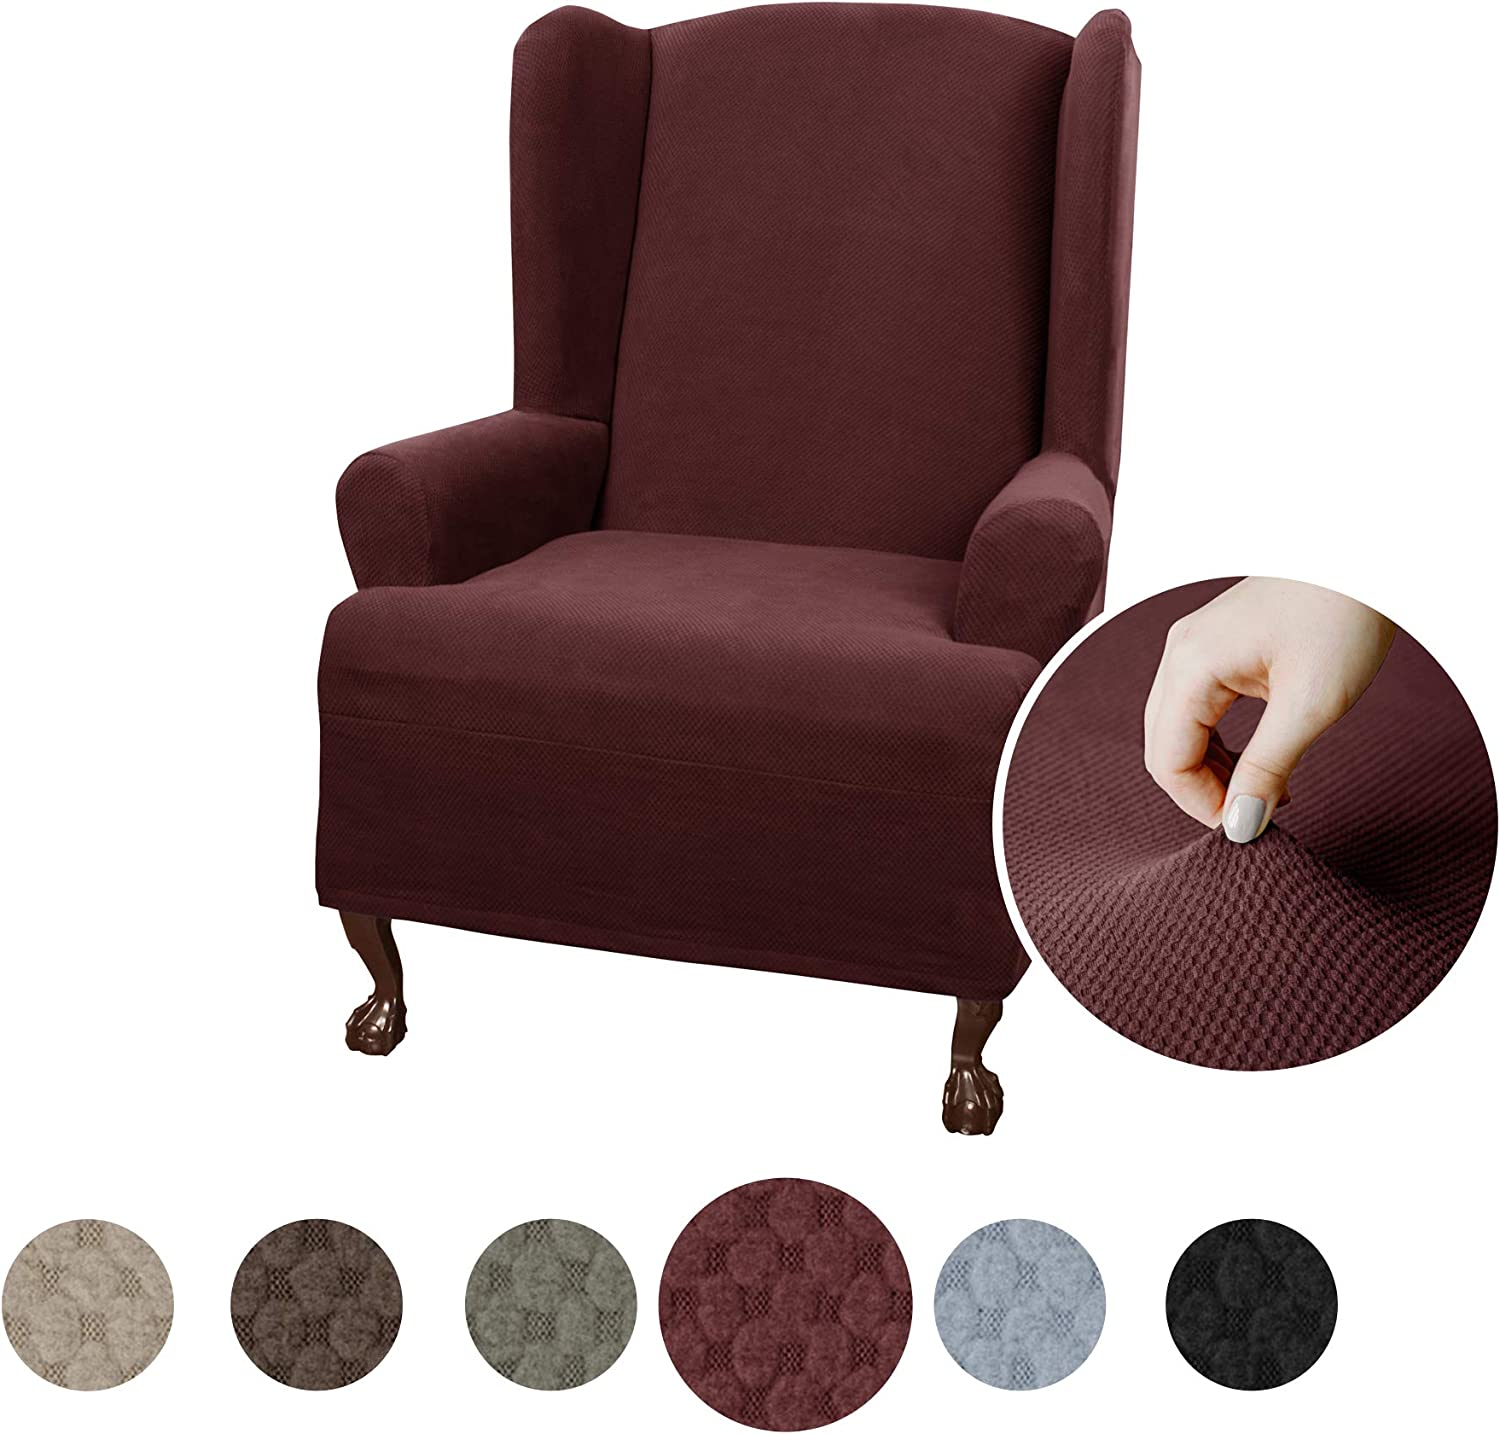 Maytex Pixel Ultra Soft Stretch Wing Back Arm Chair Furniture Cover Slipcover, Wine